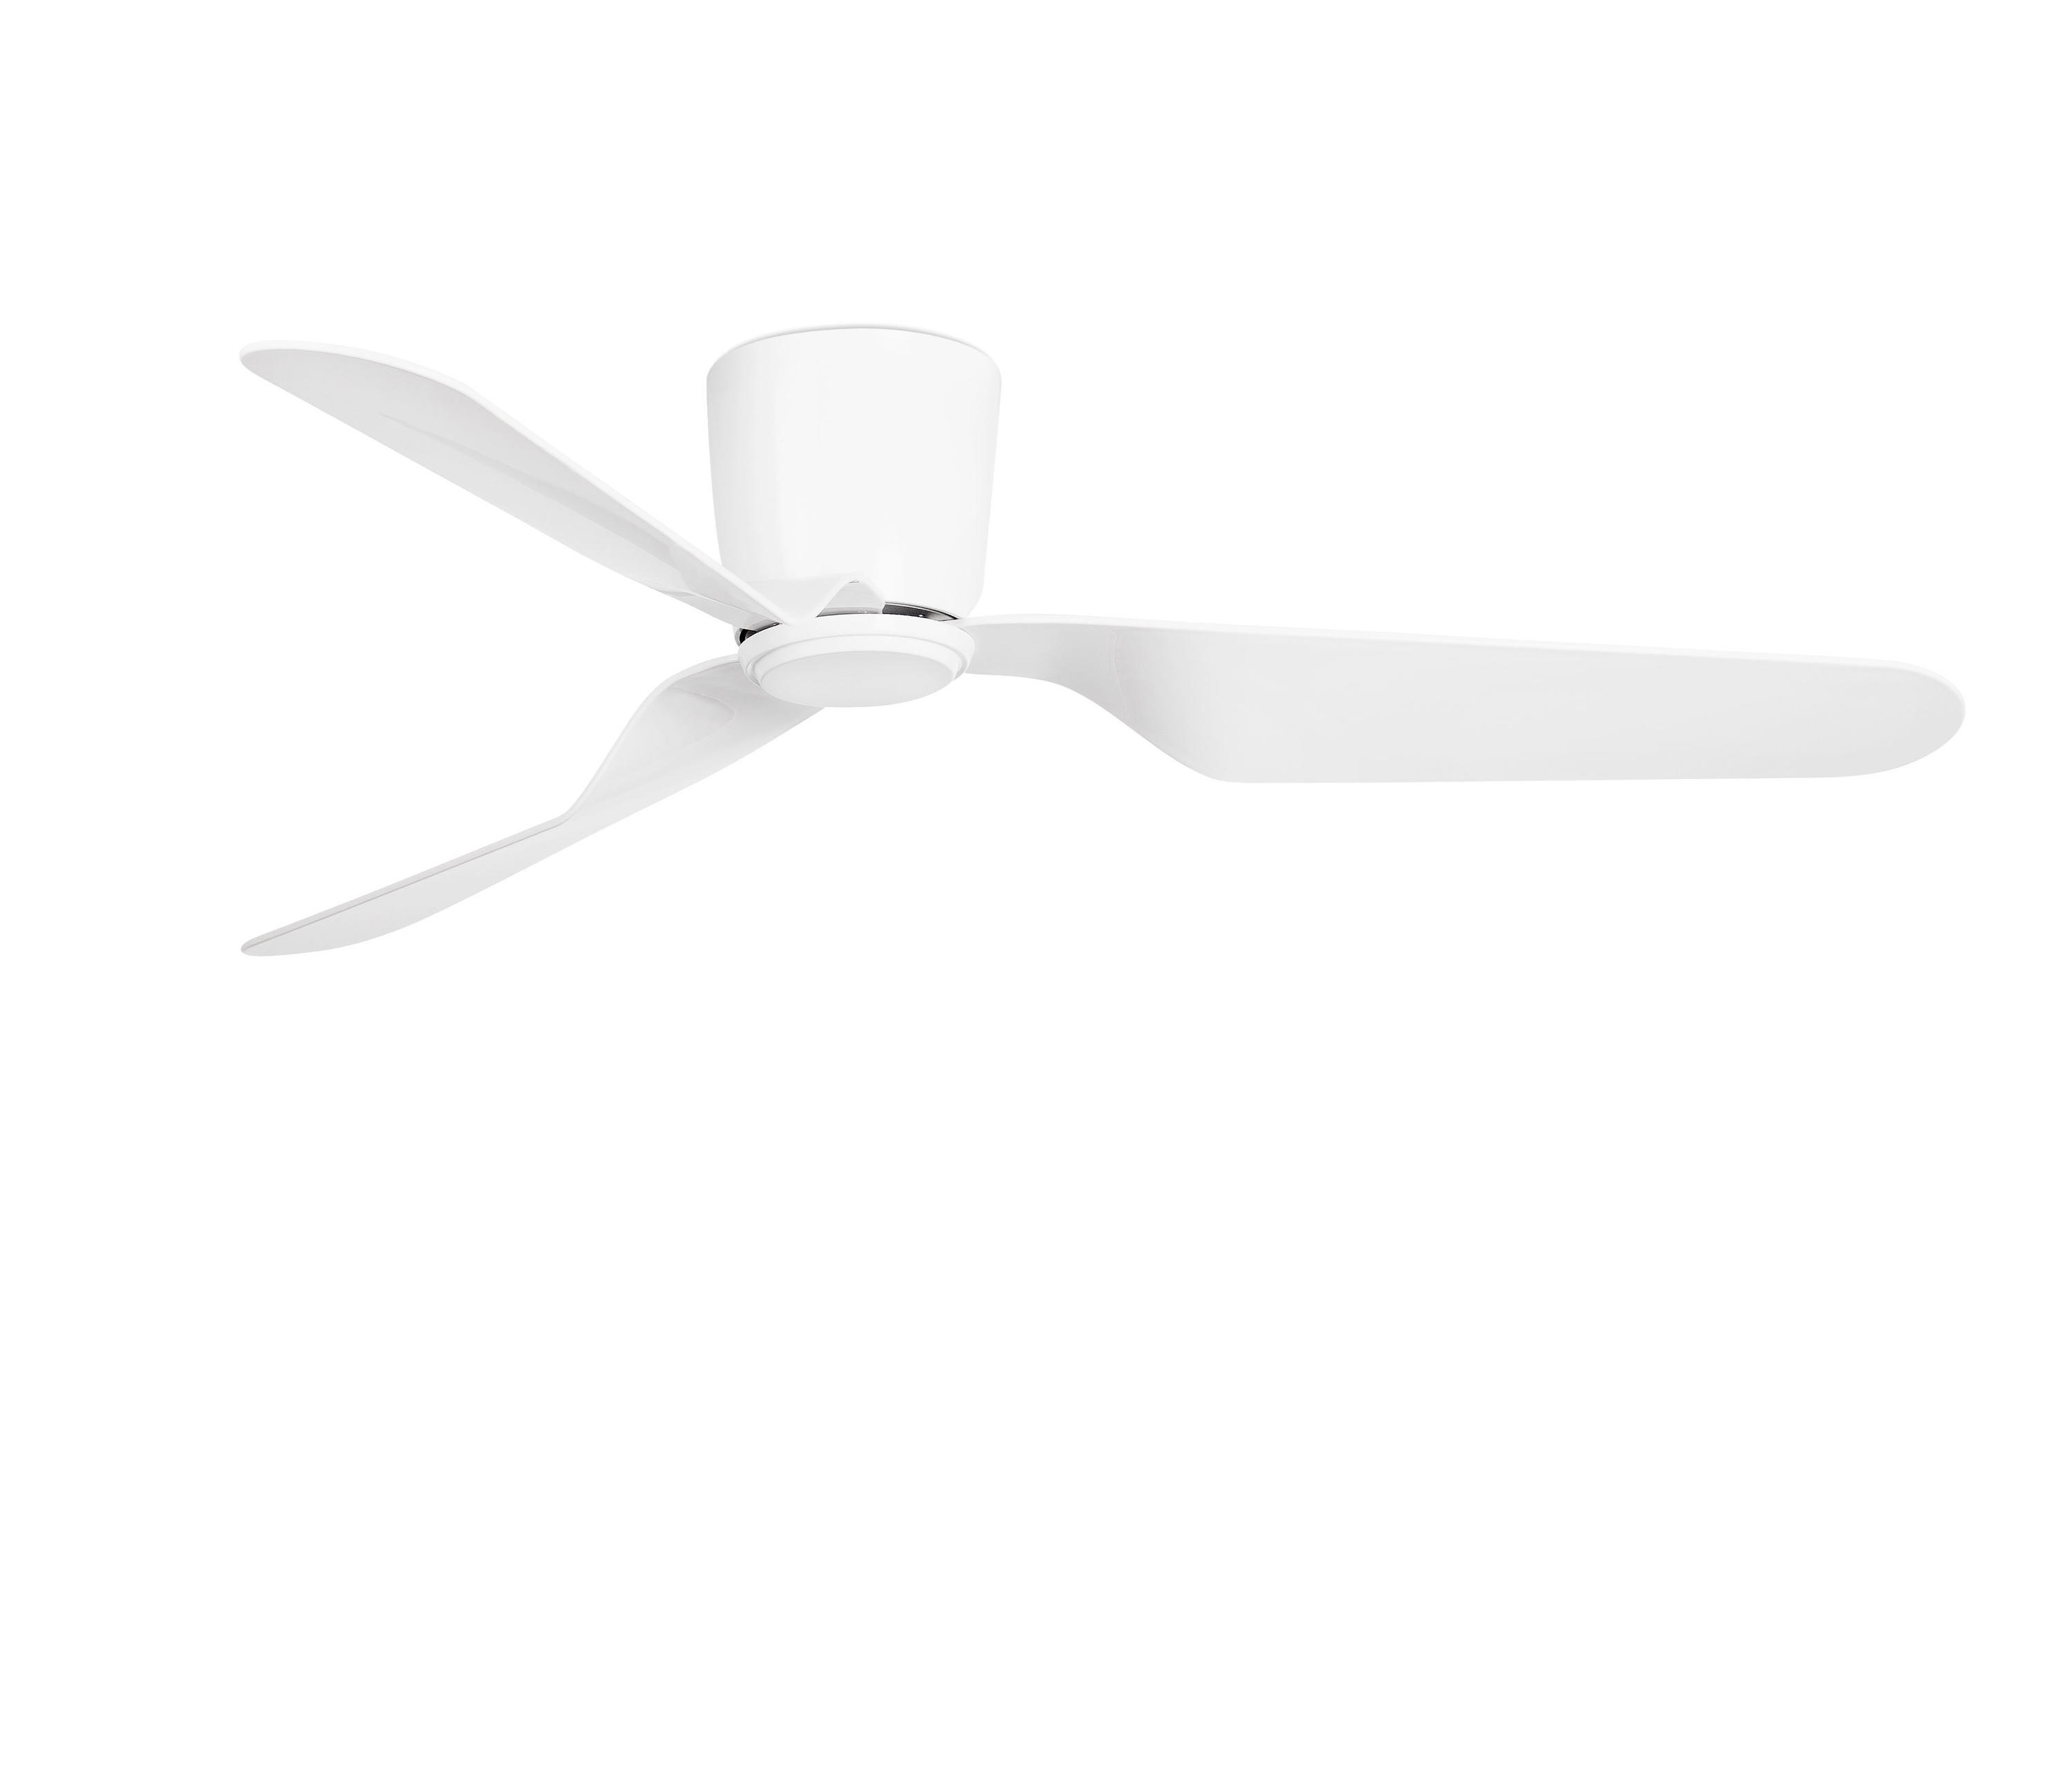 outdoor ceiling fan inch veloclub developed office patrofi design co new household galvanized